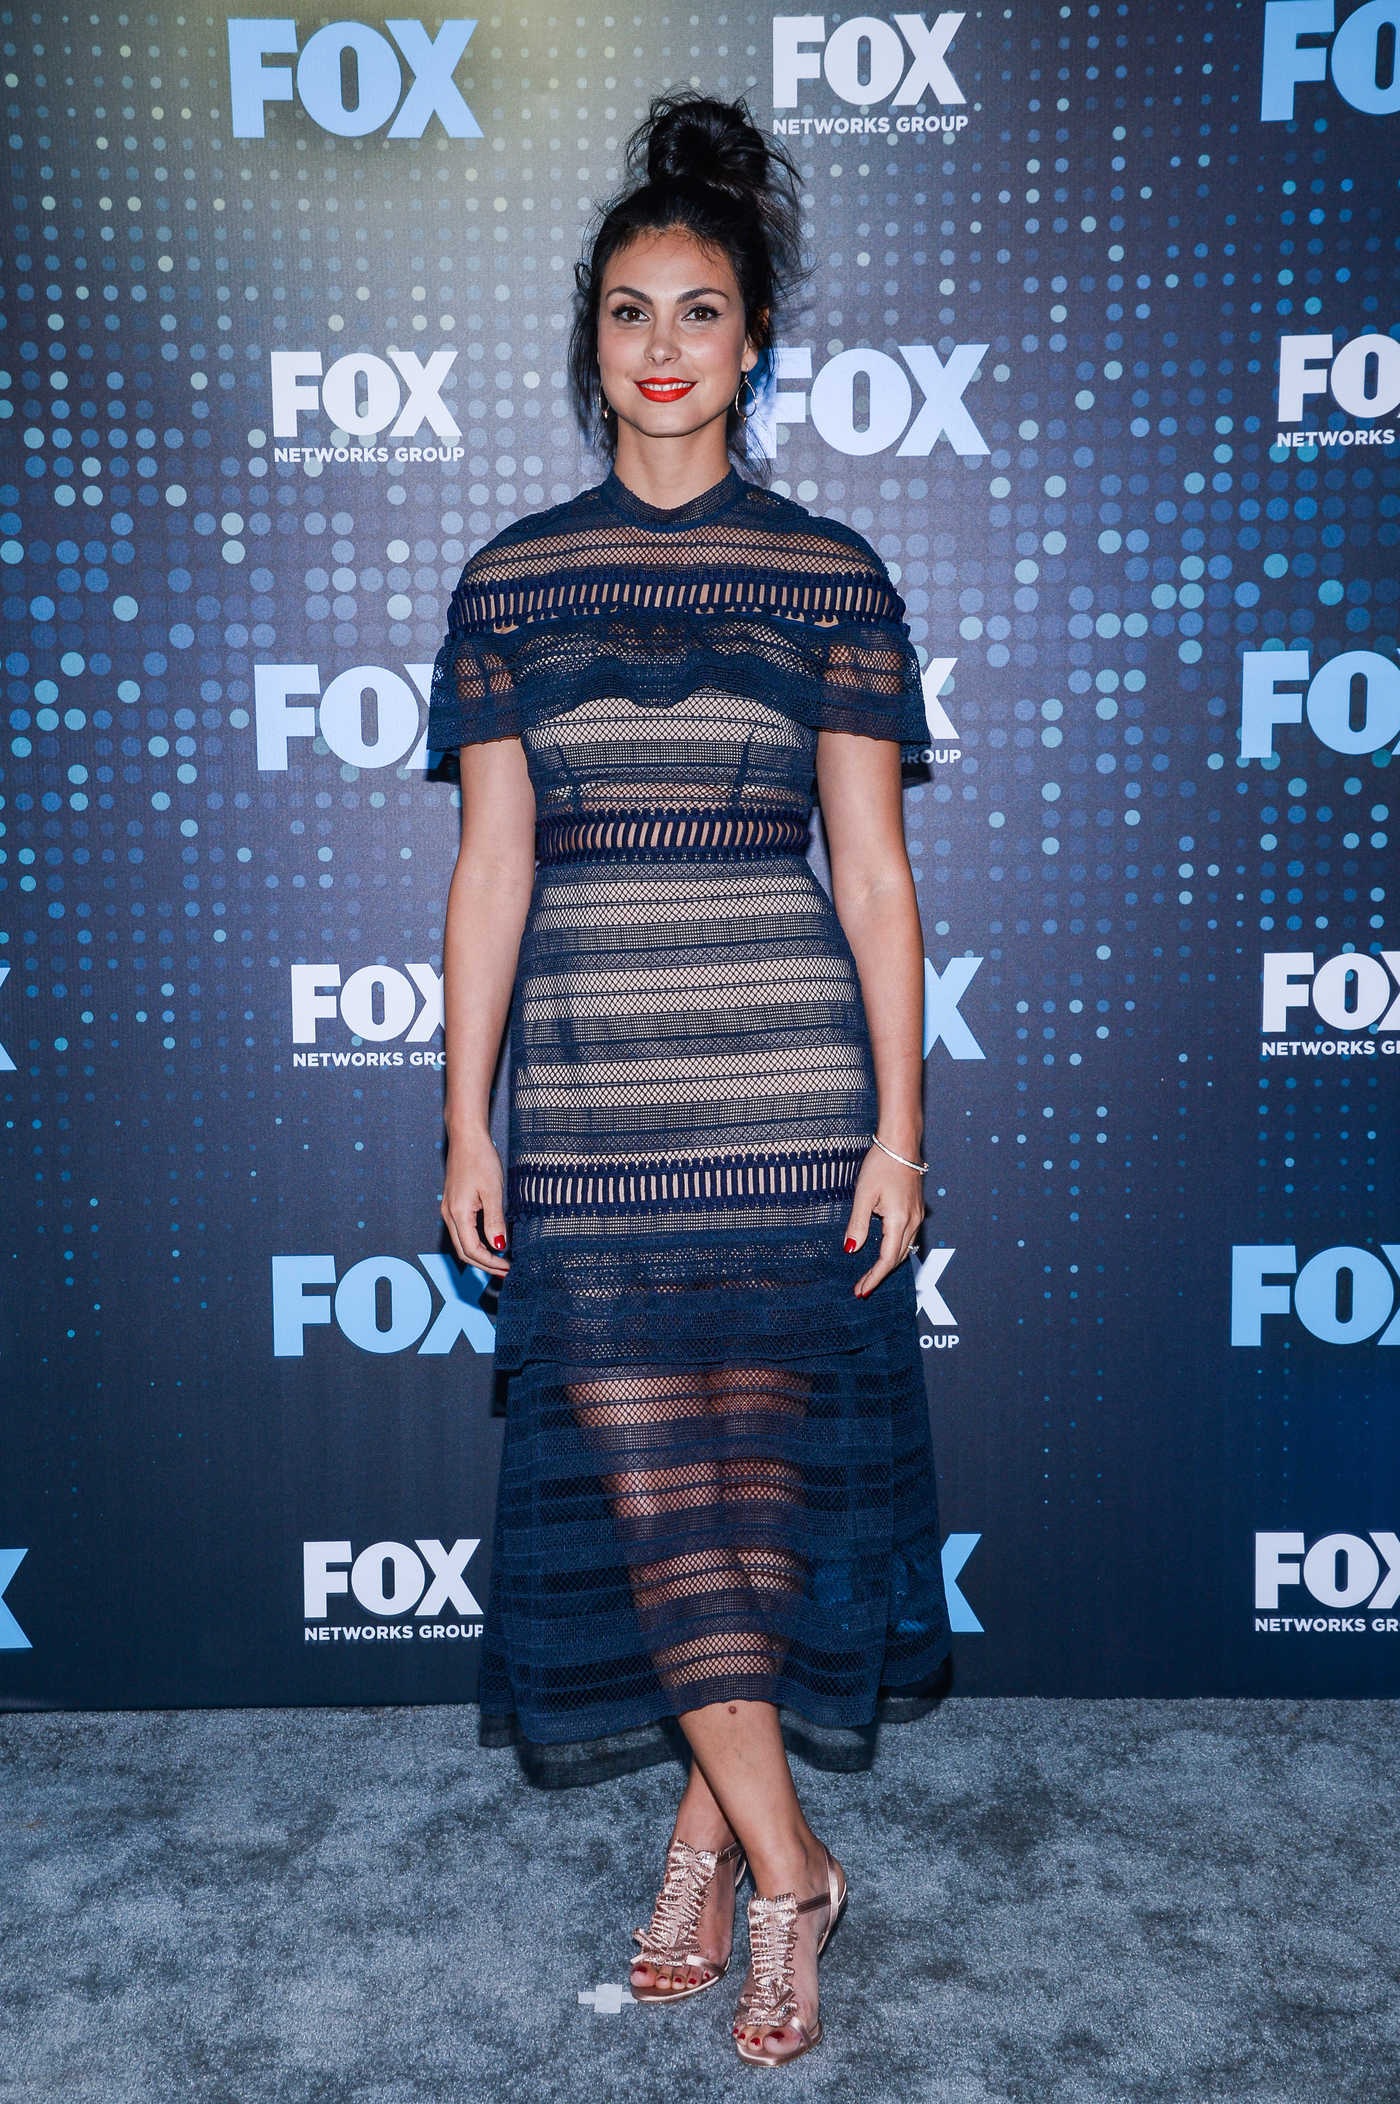 Morena Baccarin at the Fox Upfront Presentation in NYC 05/15/2017